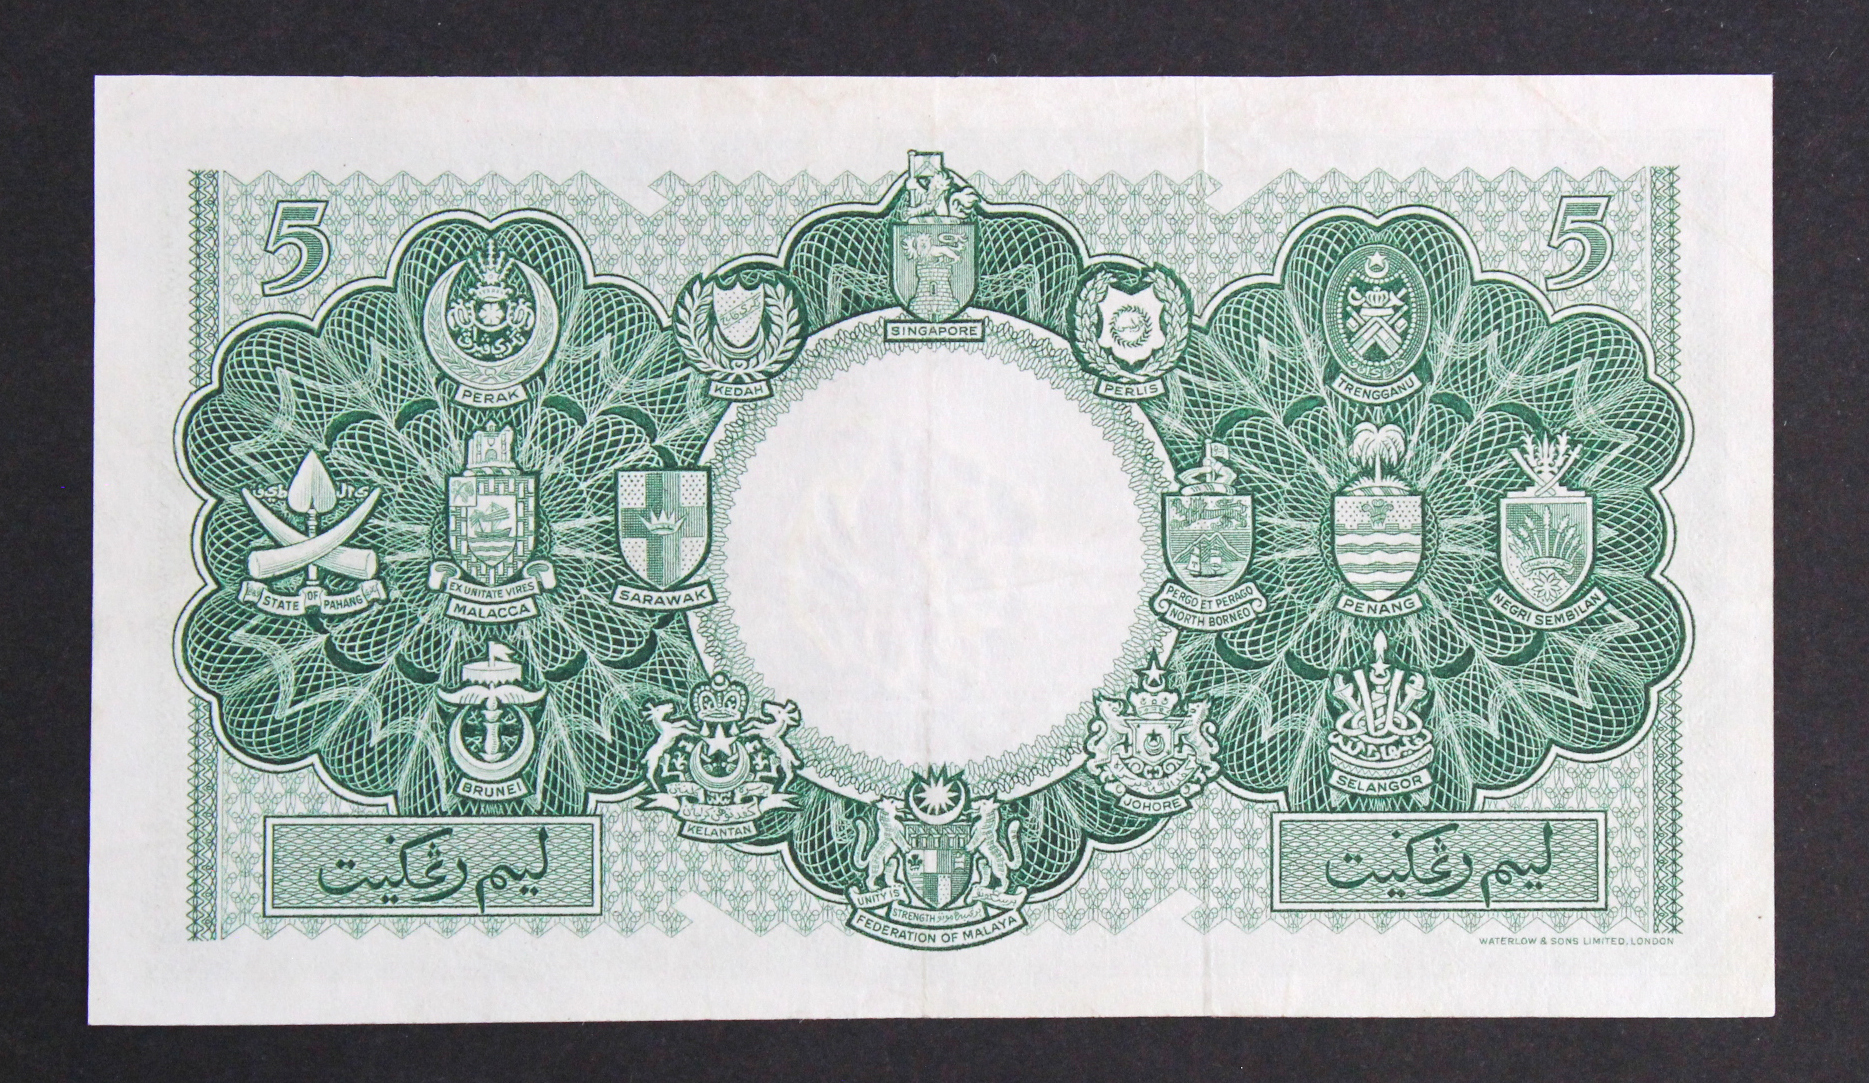 Malaya & British Borneo 5 Dollars dated 21st March 1953, serial A/31 304044 (TBB B102a, Pick2a) - Image 2 of 2